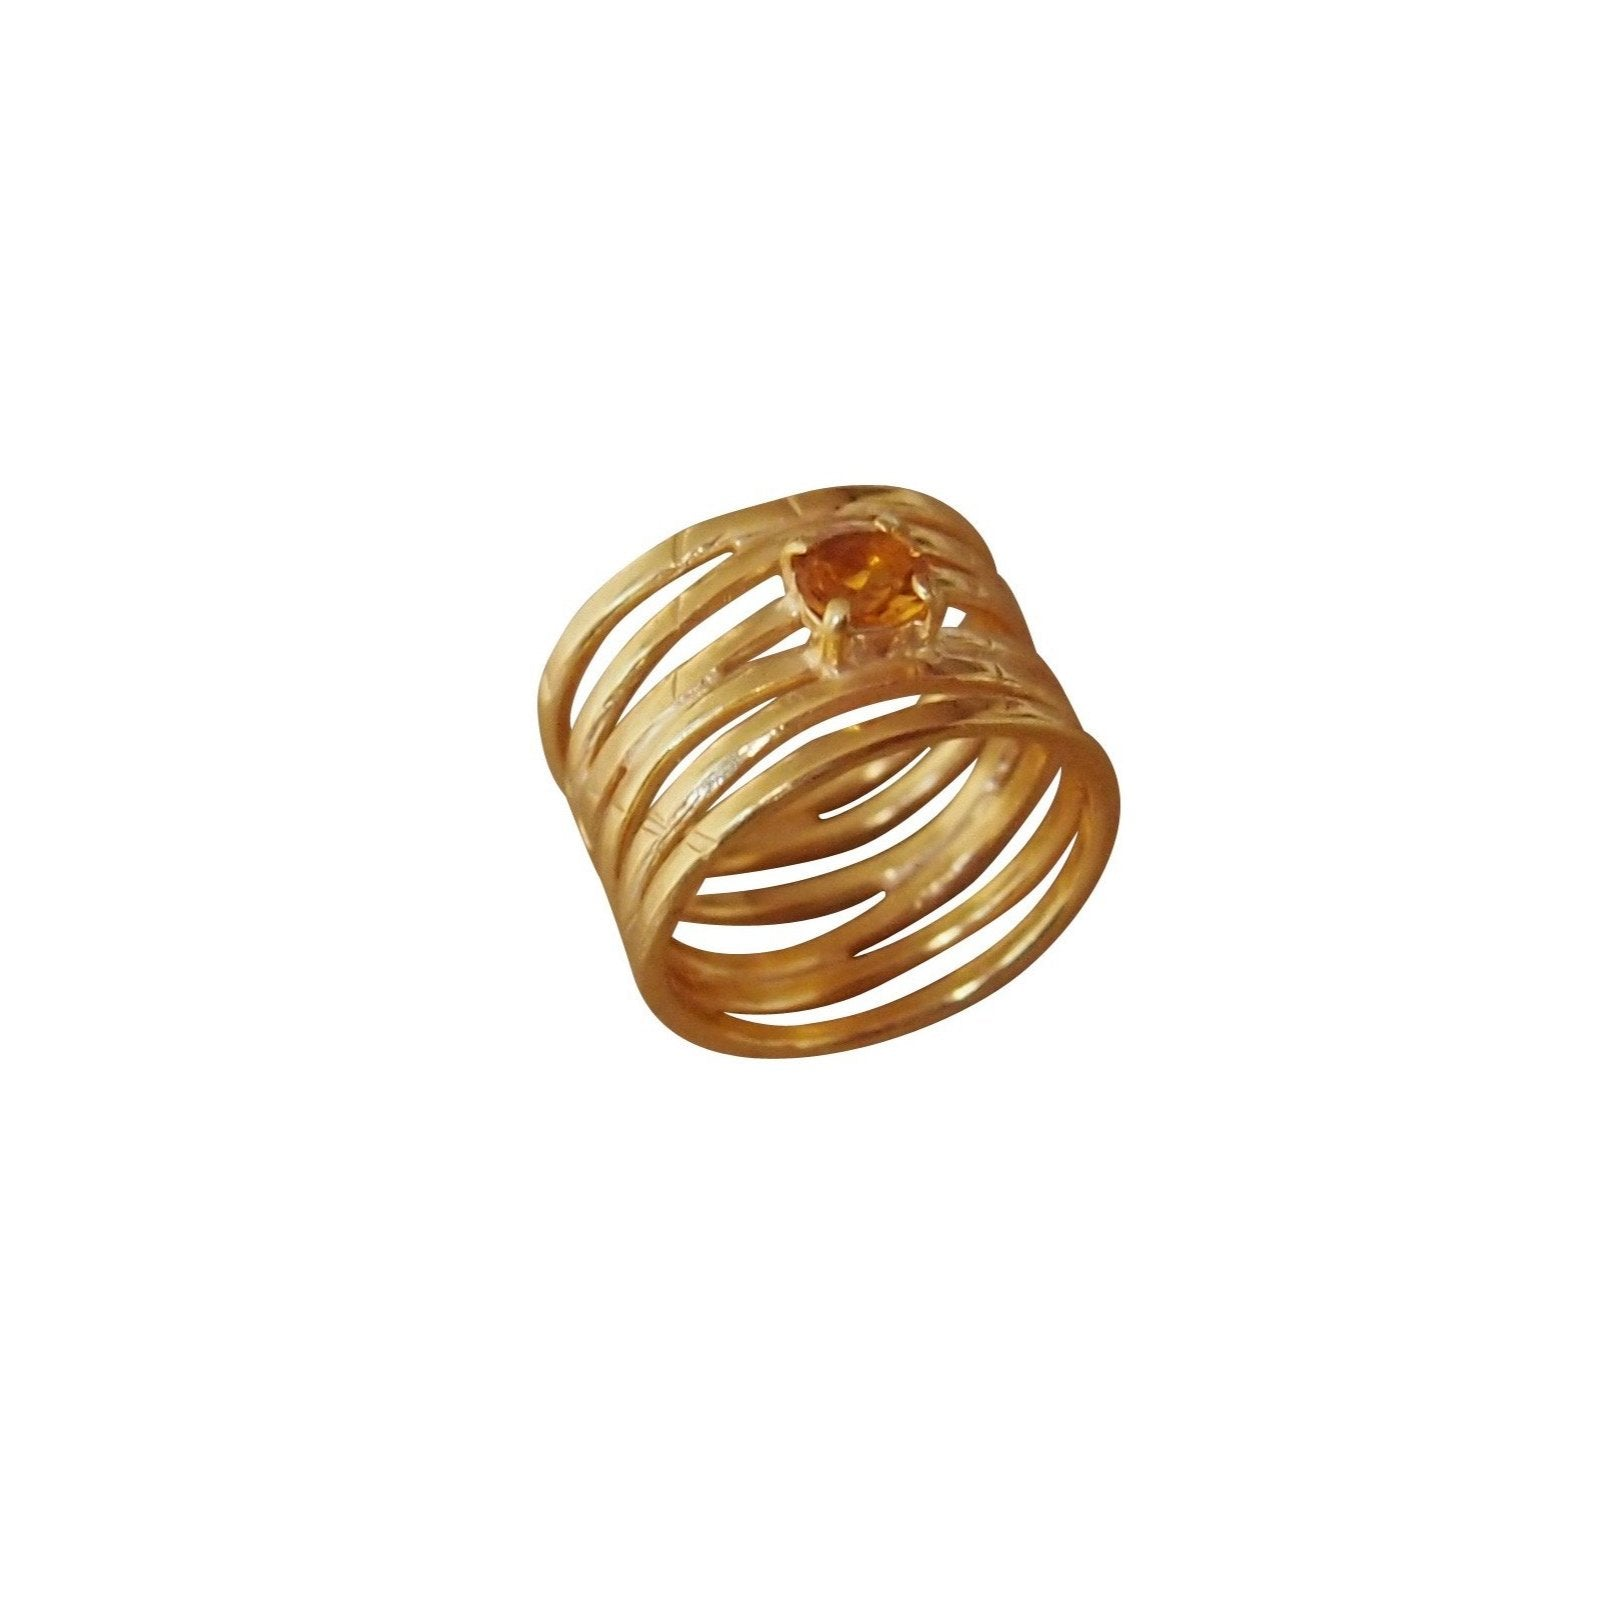 Gold wave ring with yellow citrine